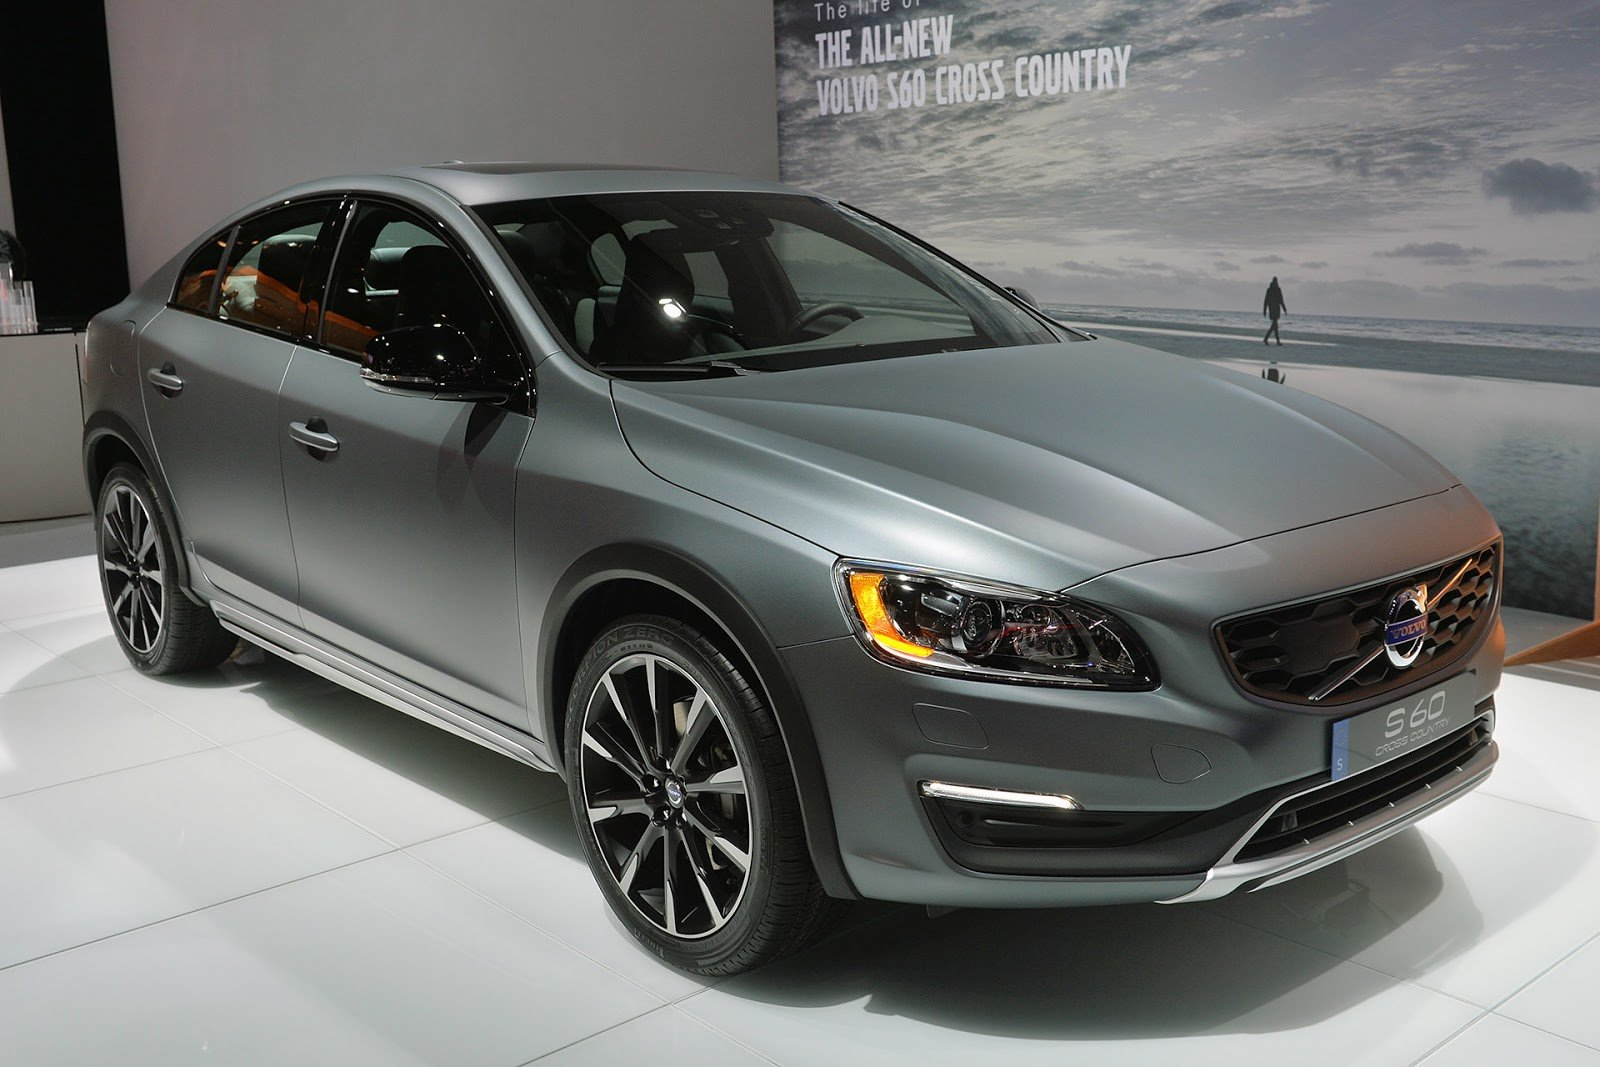 2016 Volvo S60 Cross Country   Hd Wallpapers Pictures Pics Images 1600x1067